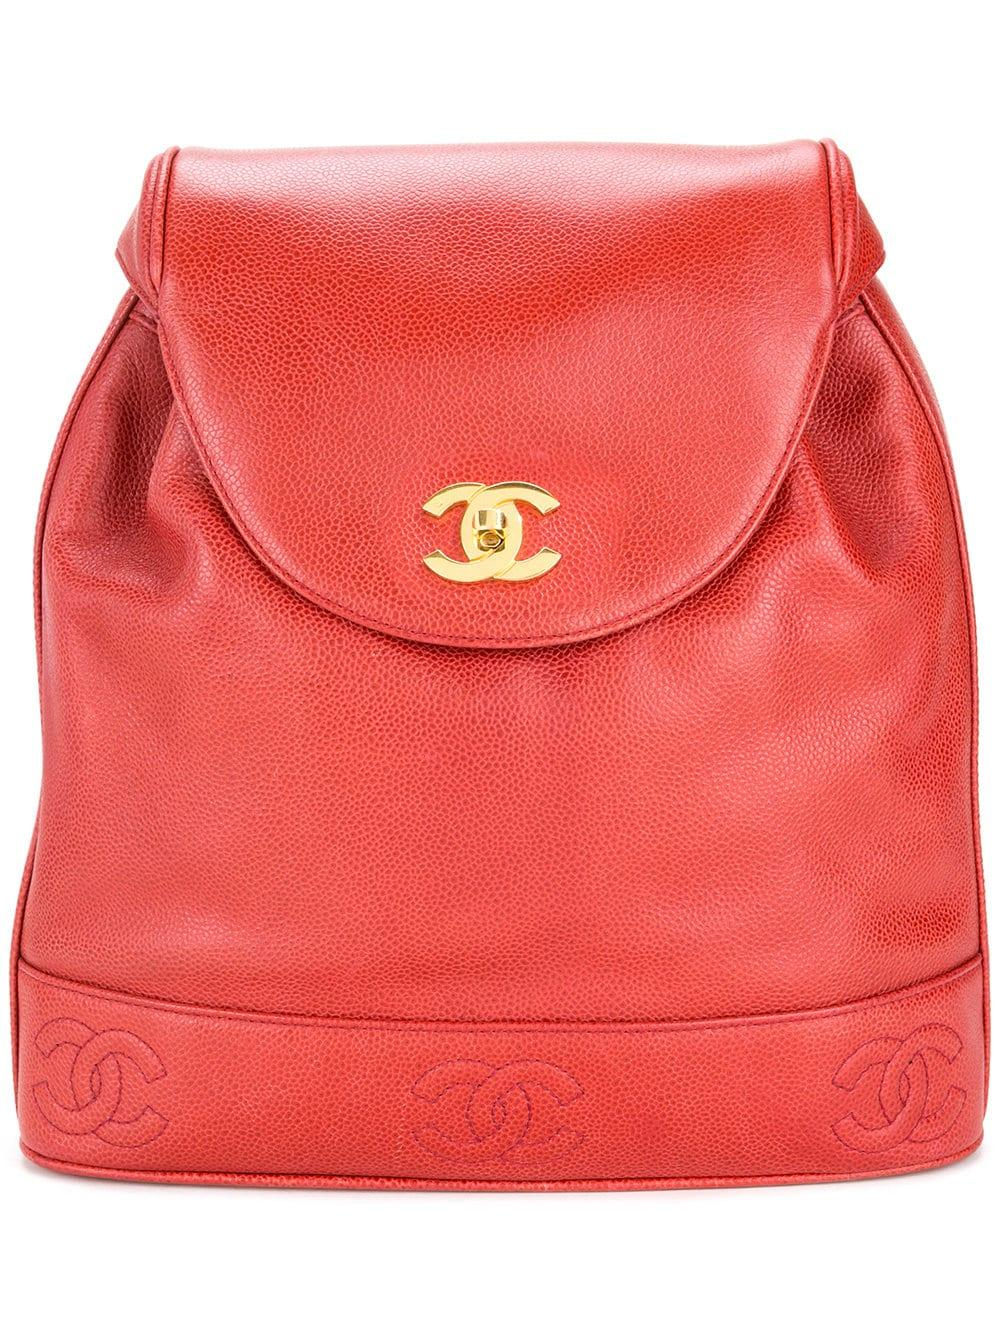 98189e8c1306 Chanel Vintage Cc Logos Chain Backpack - Farfetch In Red | ModeSens